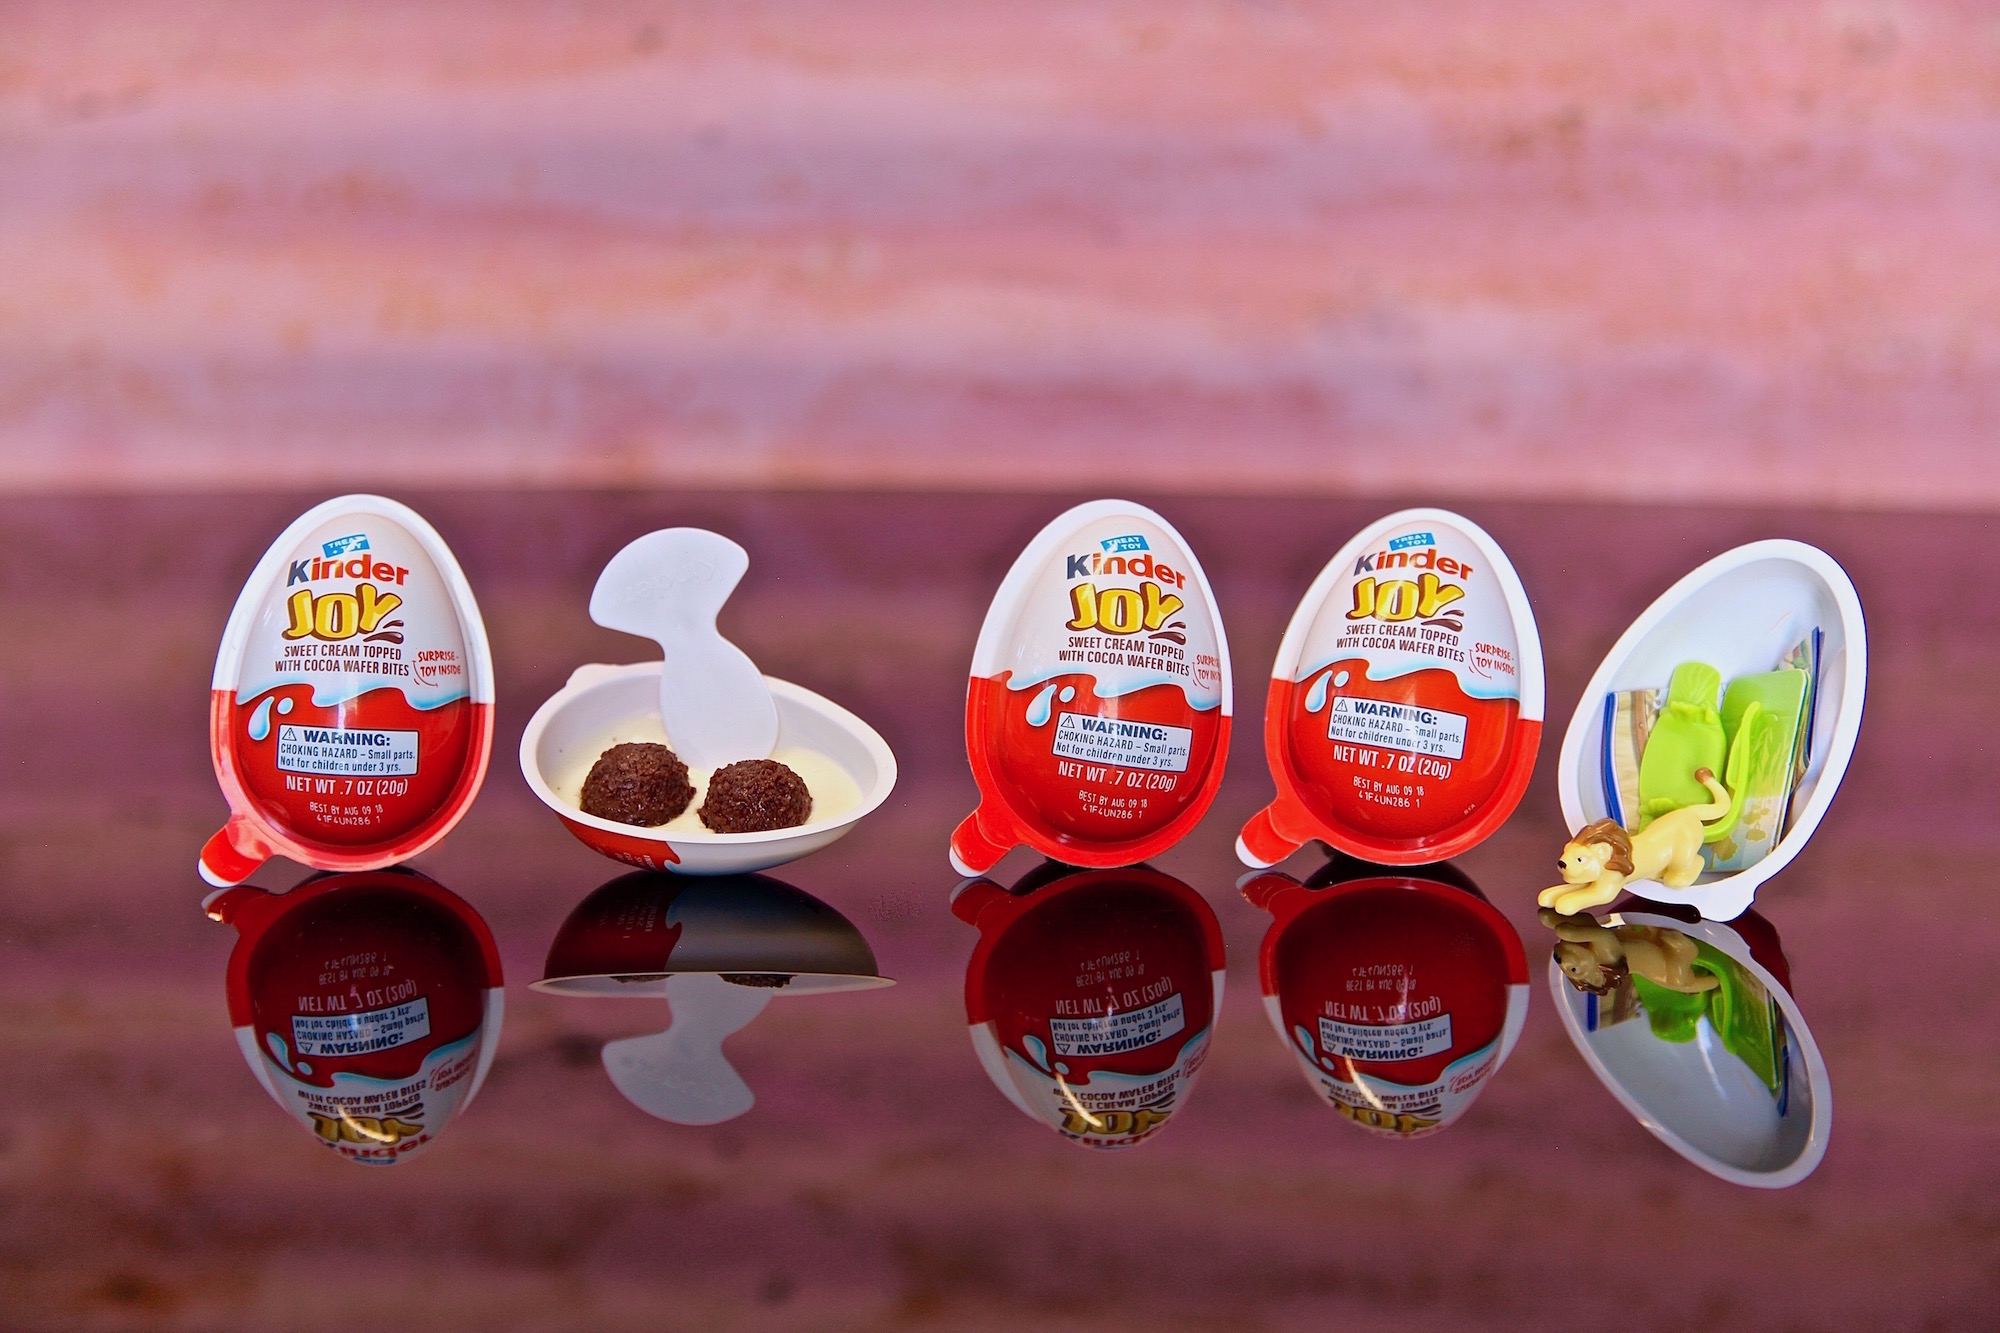 Kinder Joy Now Available Nationwide In USA!